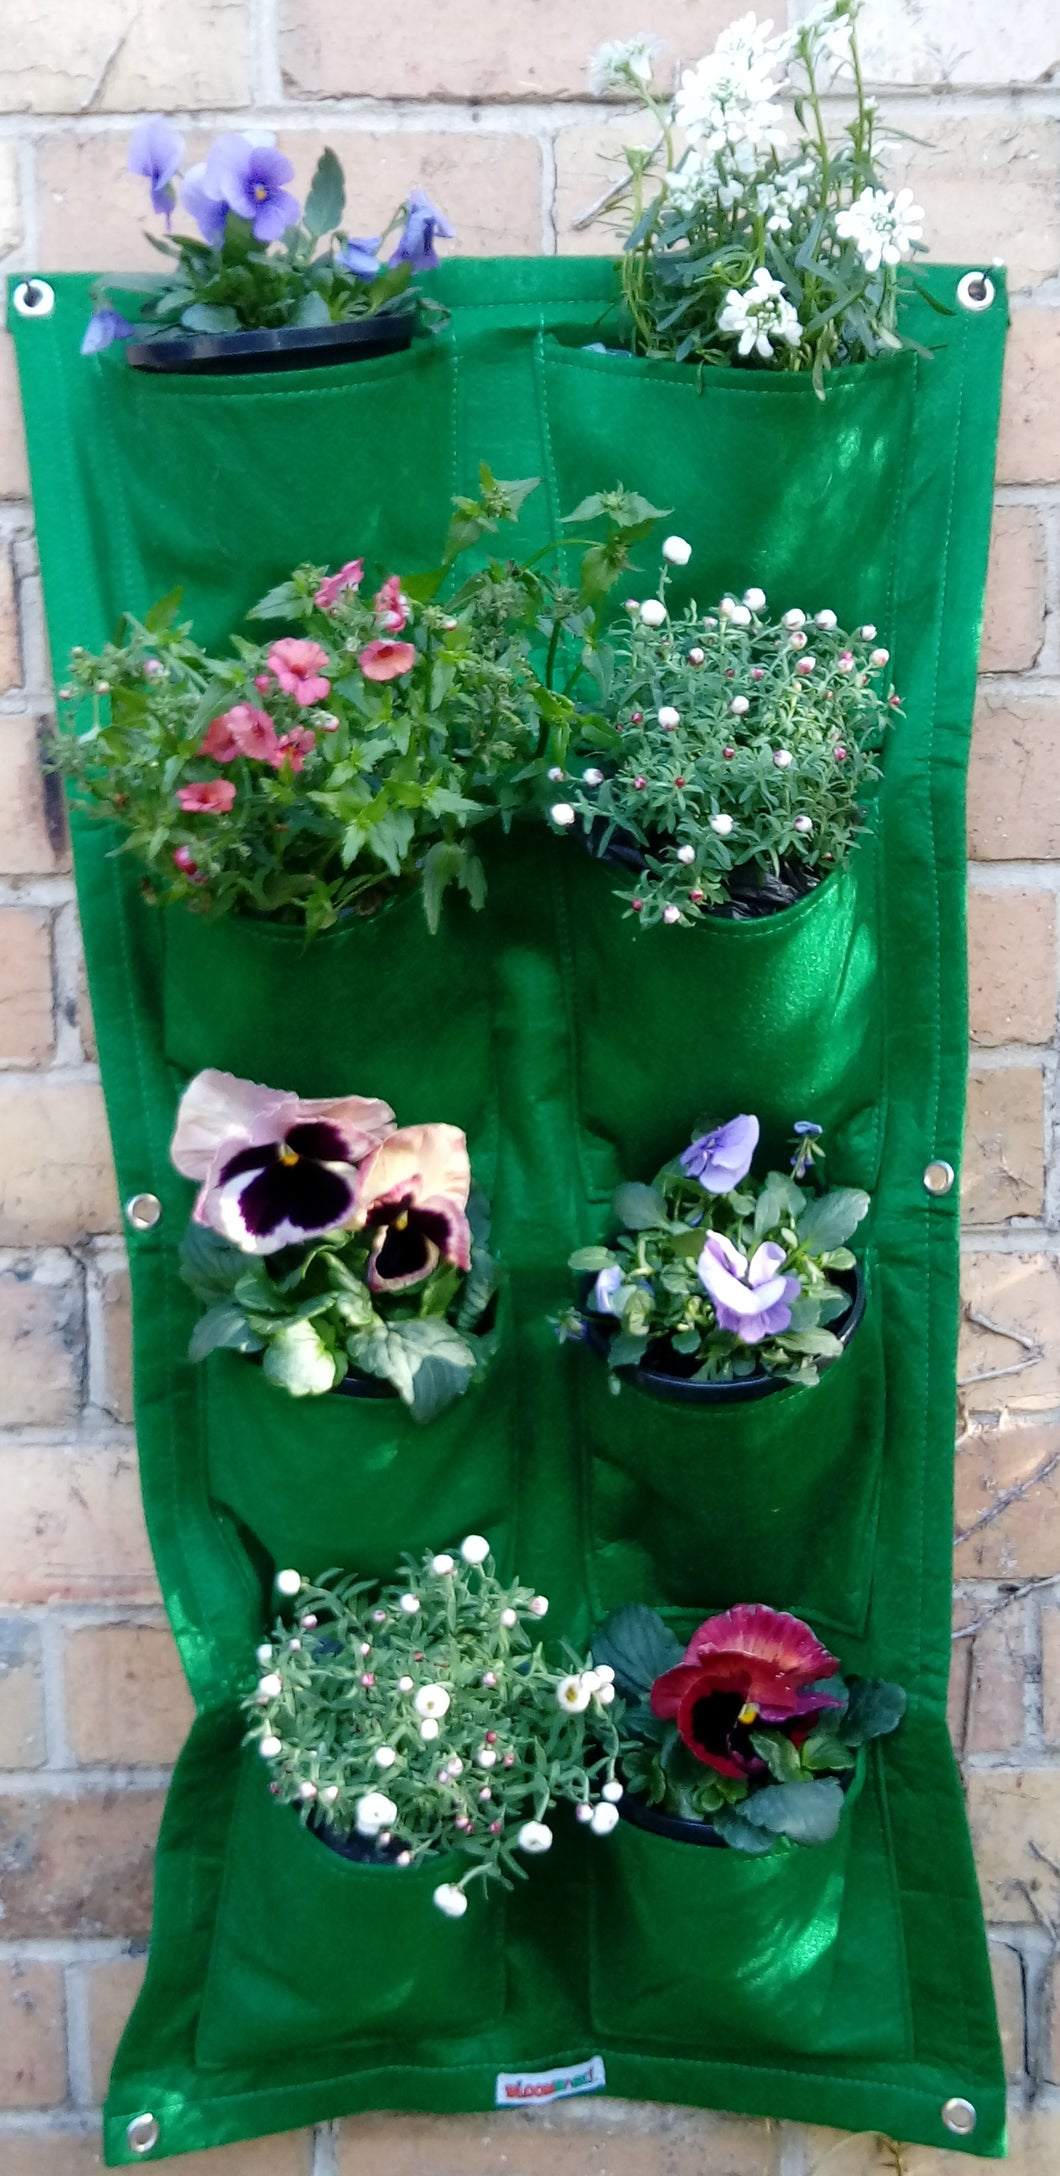 Bloombagz vertical garden, herb planter or wall hanging storage solution made out of recycled bottles